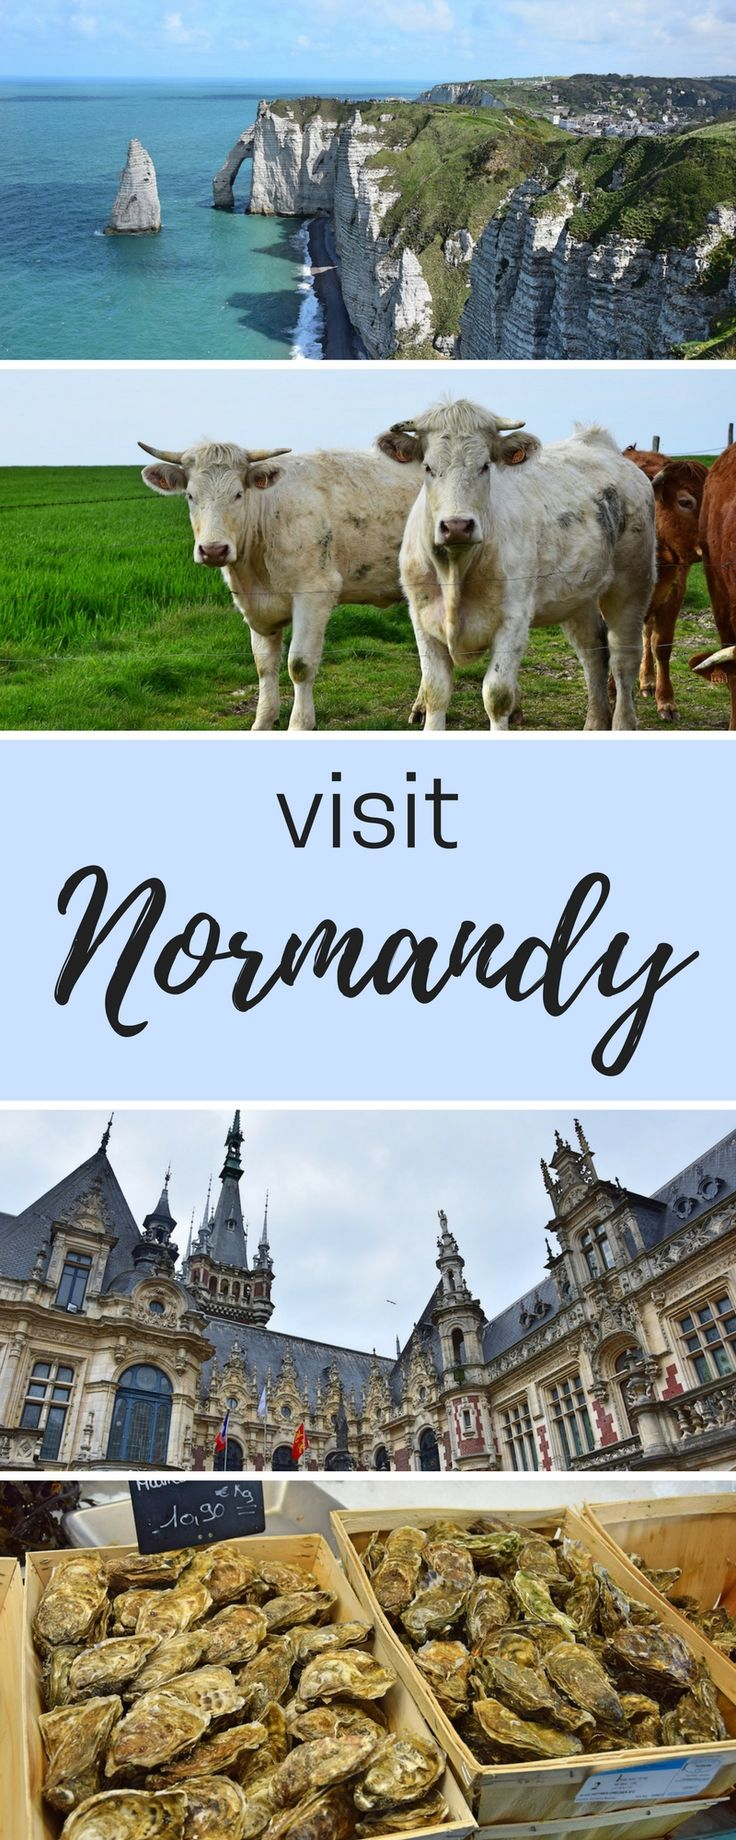 What to do in beautiful Normandy, France. Nature, food, architecture!